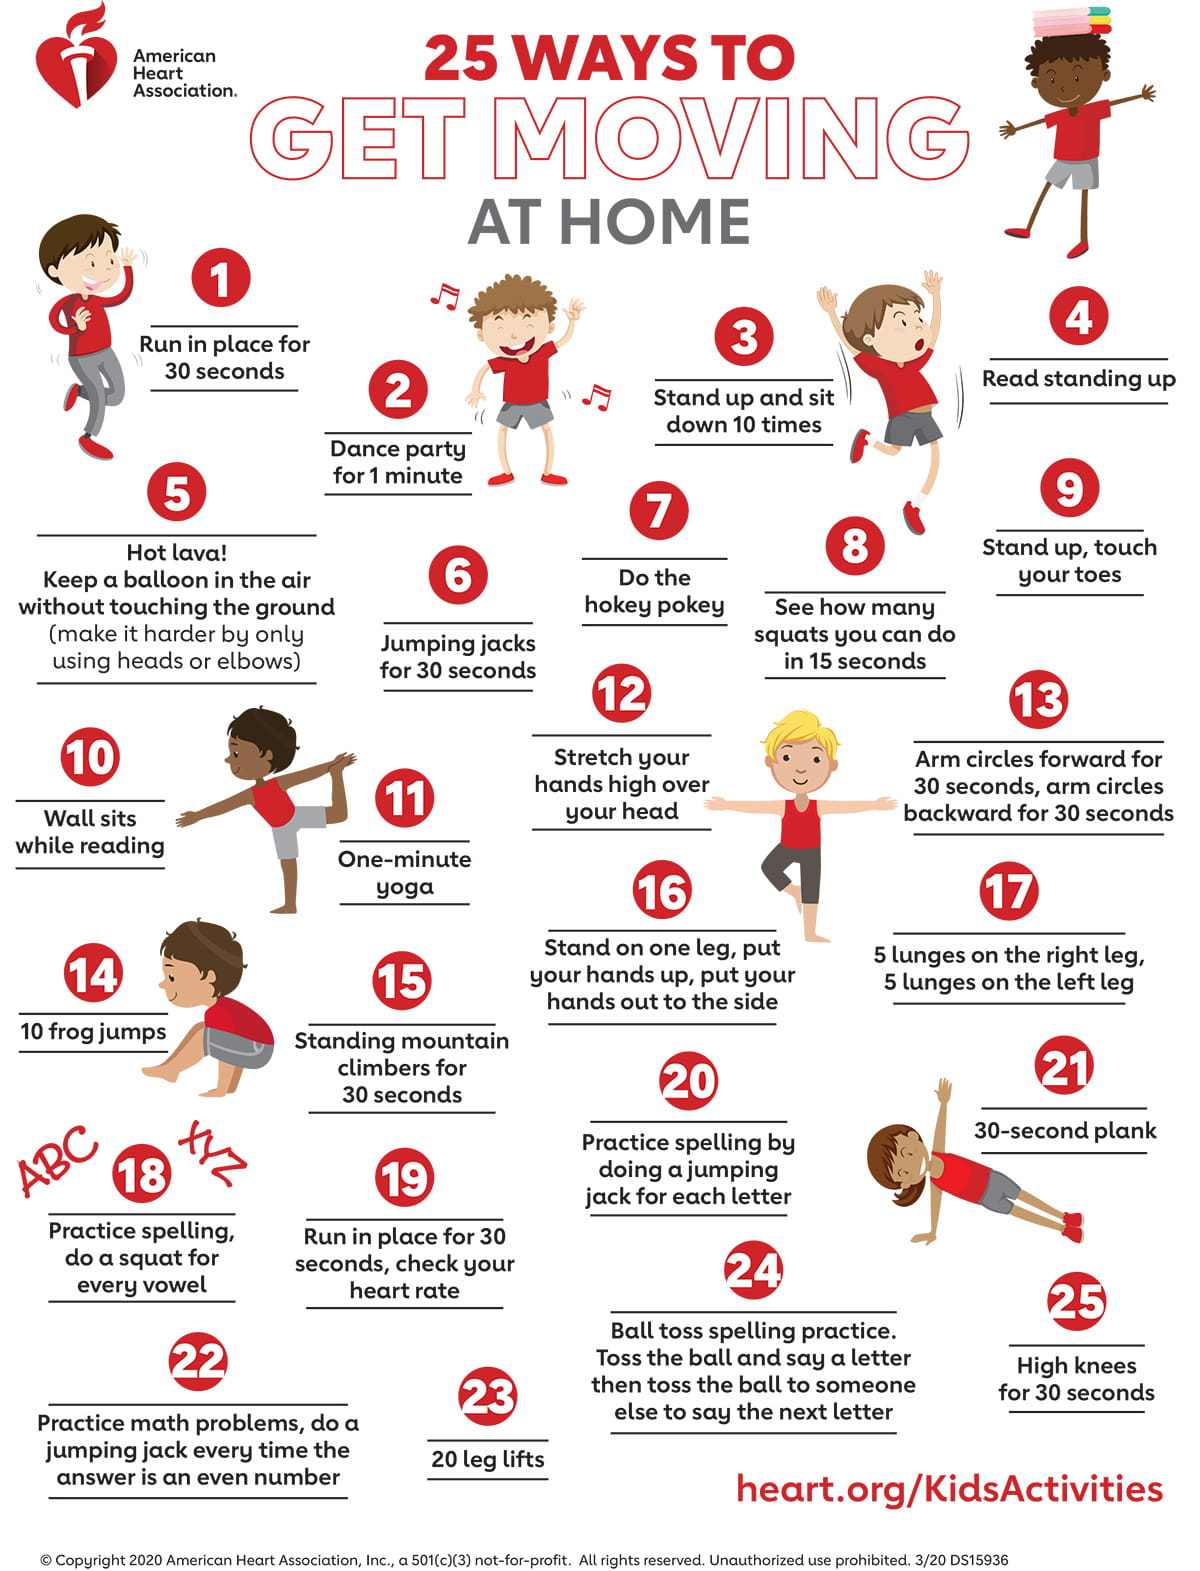 25 Ways to Get Moving at Home Infographic | American Heart Association